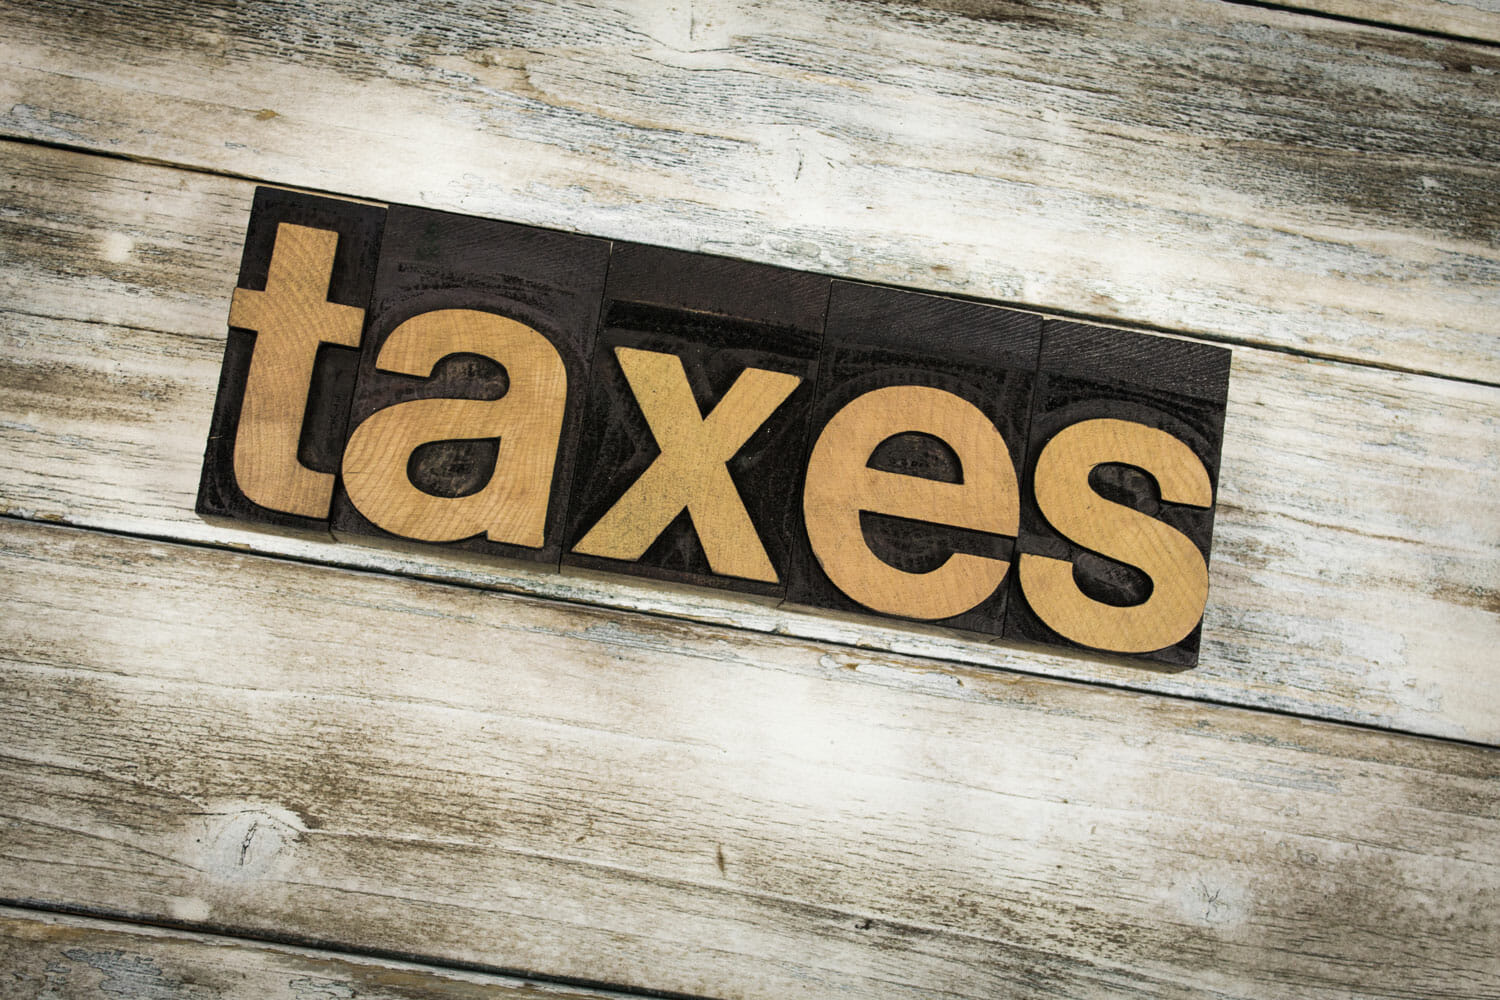 unallocated support and taxes